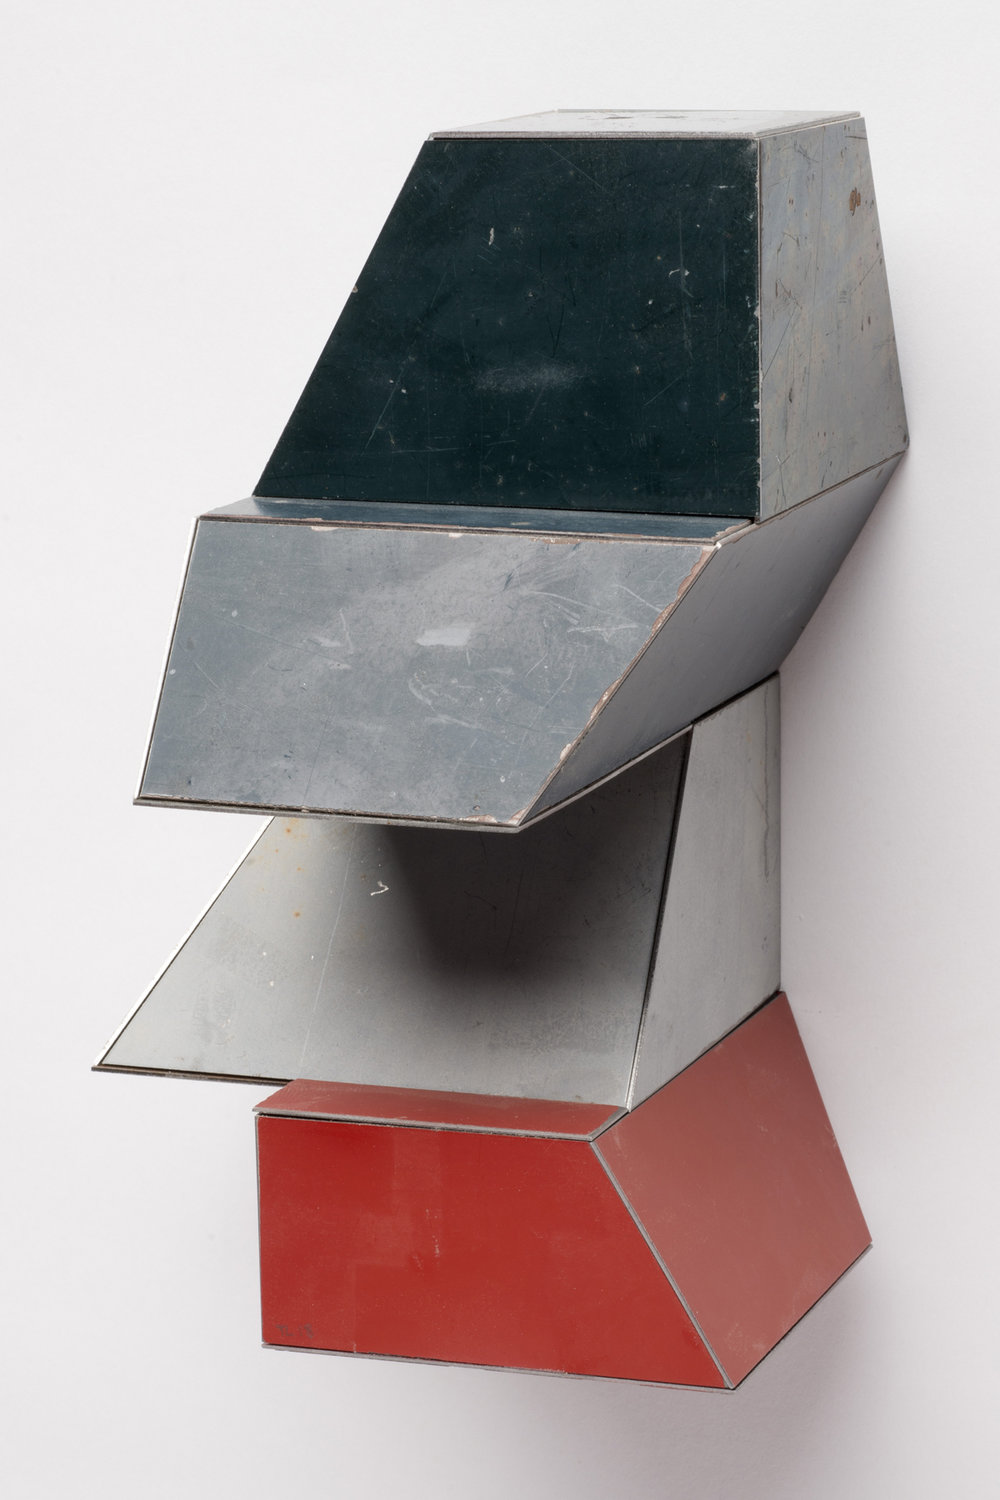 Mini Jumbo, 7.5 x 4.5 x 5 inches / 19 x 11.4 x 12.7 cm, salvage steel, marine-grade plywood, silicone, vulcanized rubber, hardware, 2018